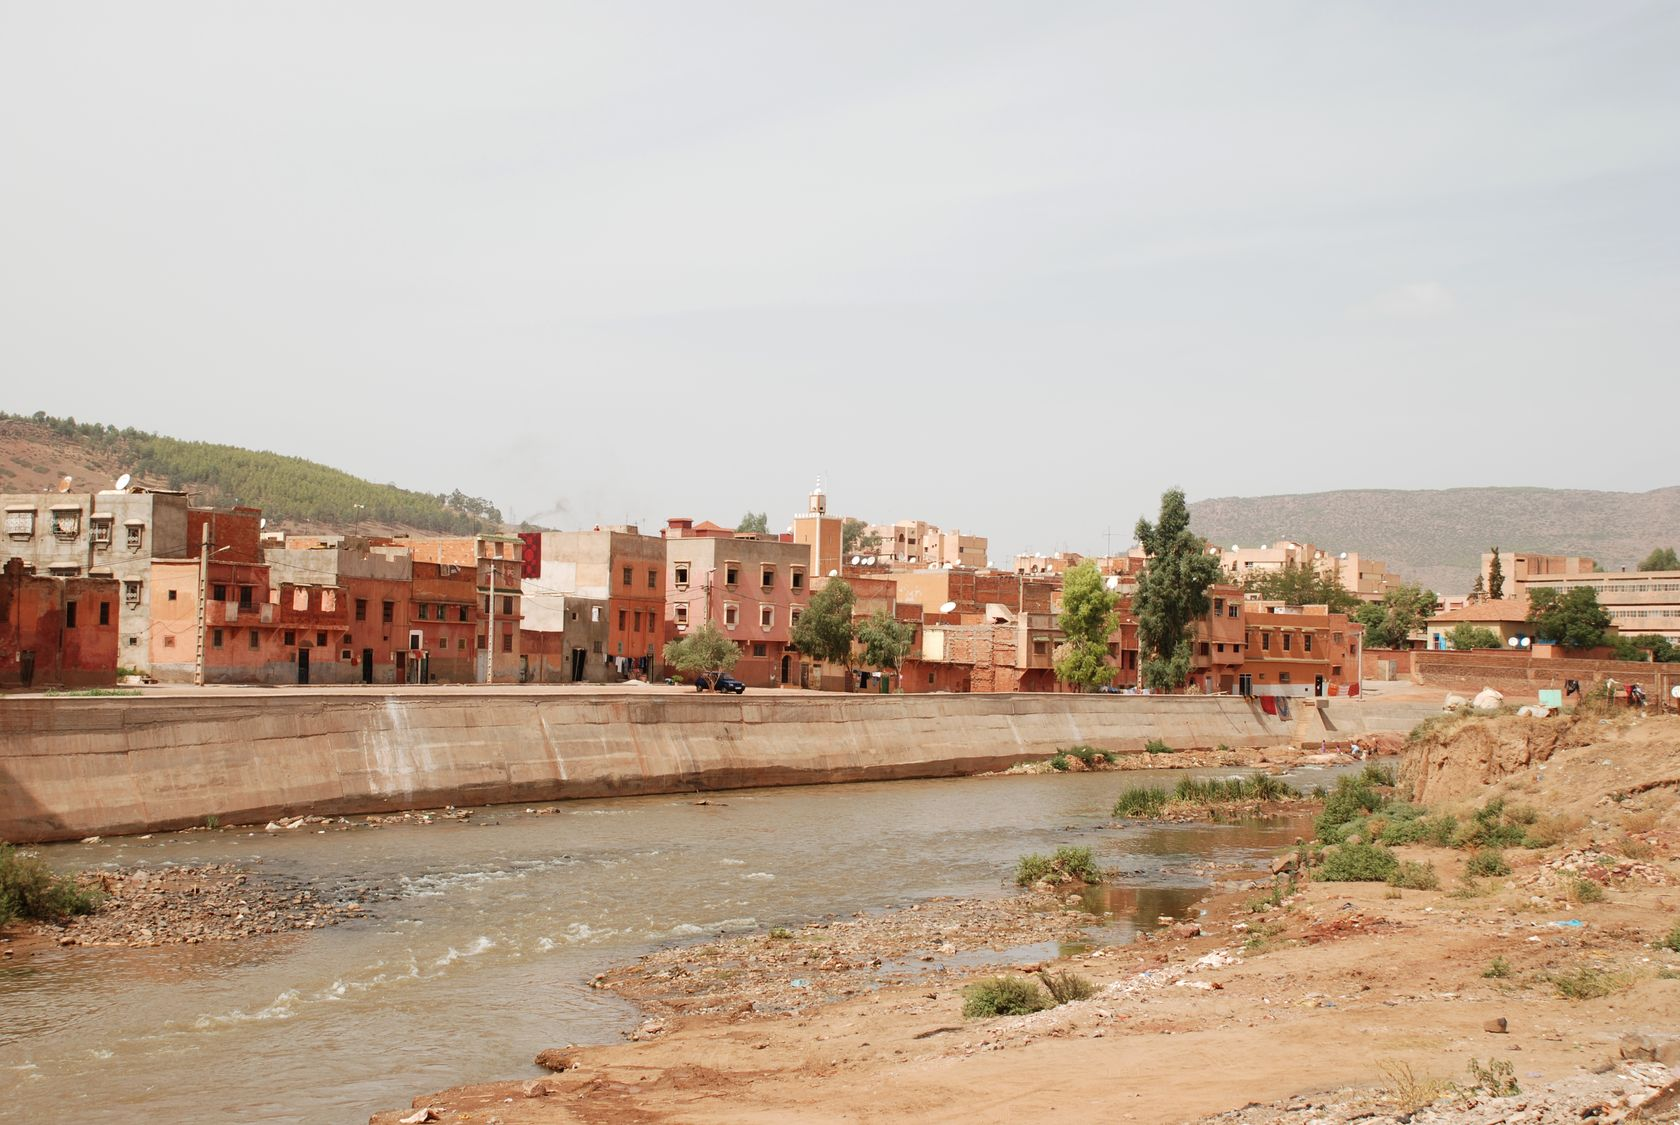 A river runs across the image from left to right with a town in the background, behind a concrete flood defence. The foreground shows a stony, sparsely vegetated river bank.